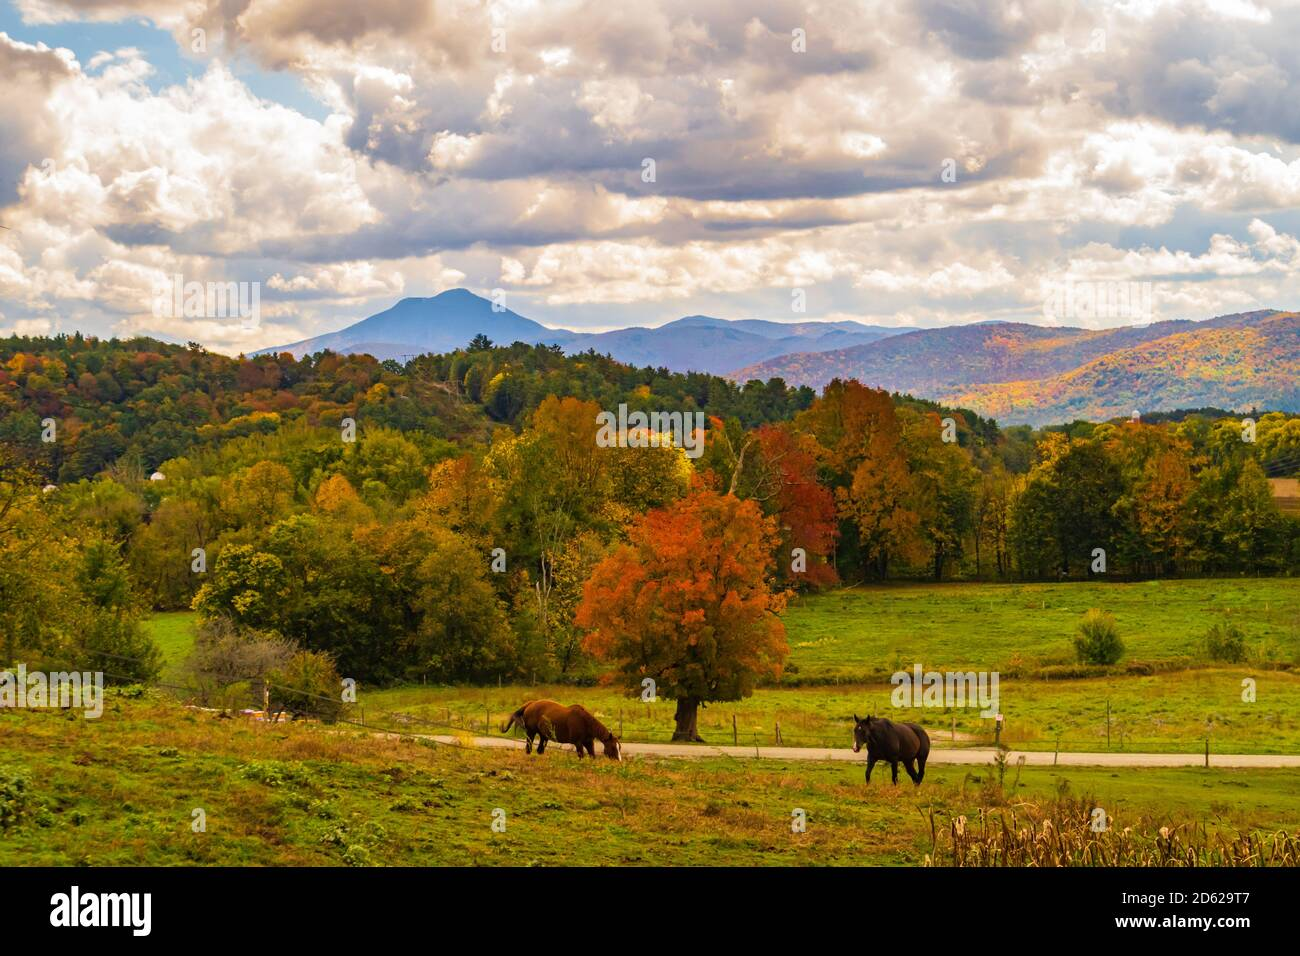 view of Camels Hump Mountain in fall foliage season, in Vermont Stock Photo